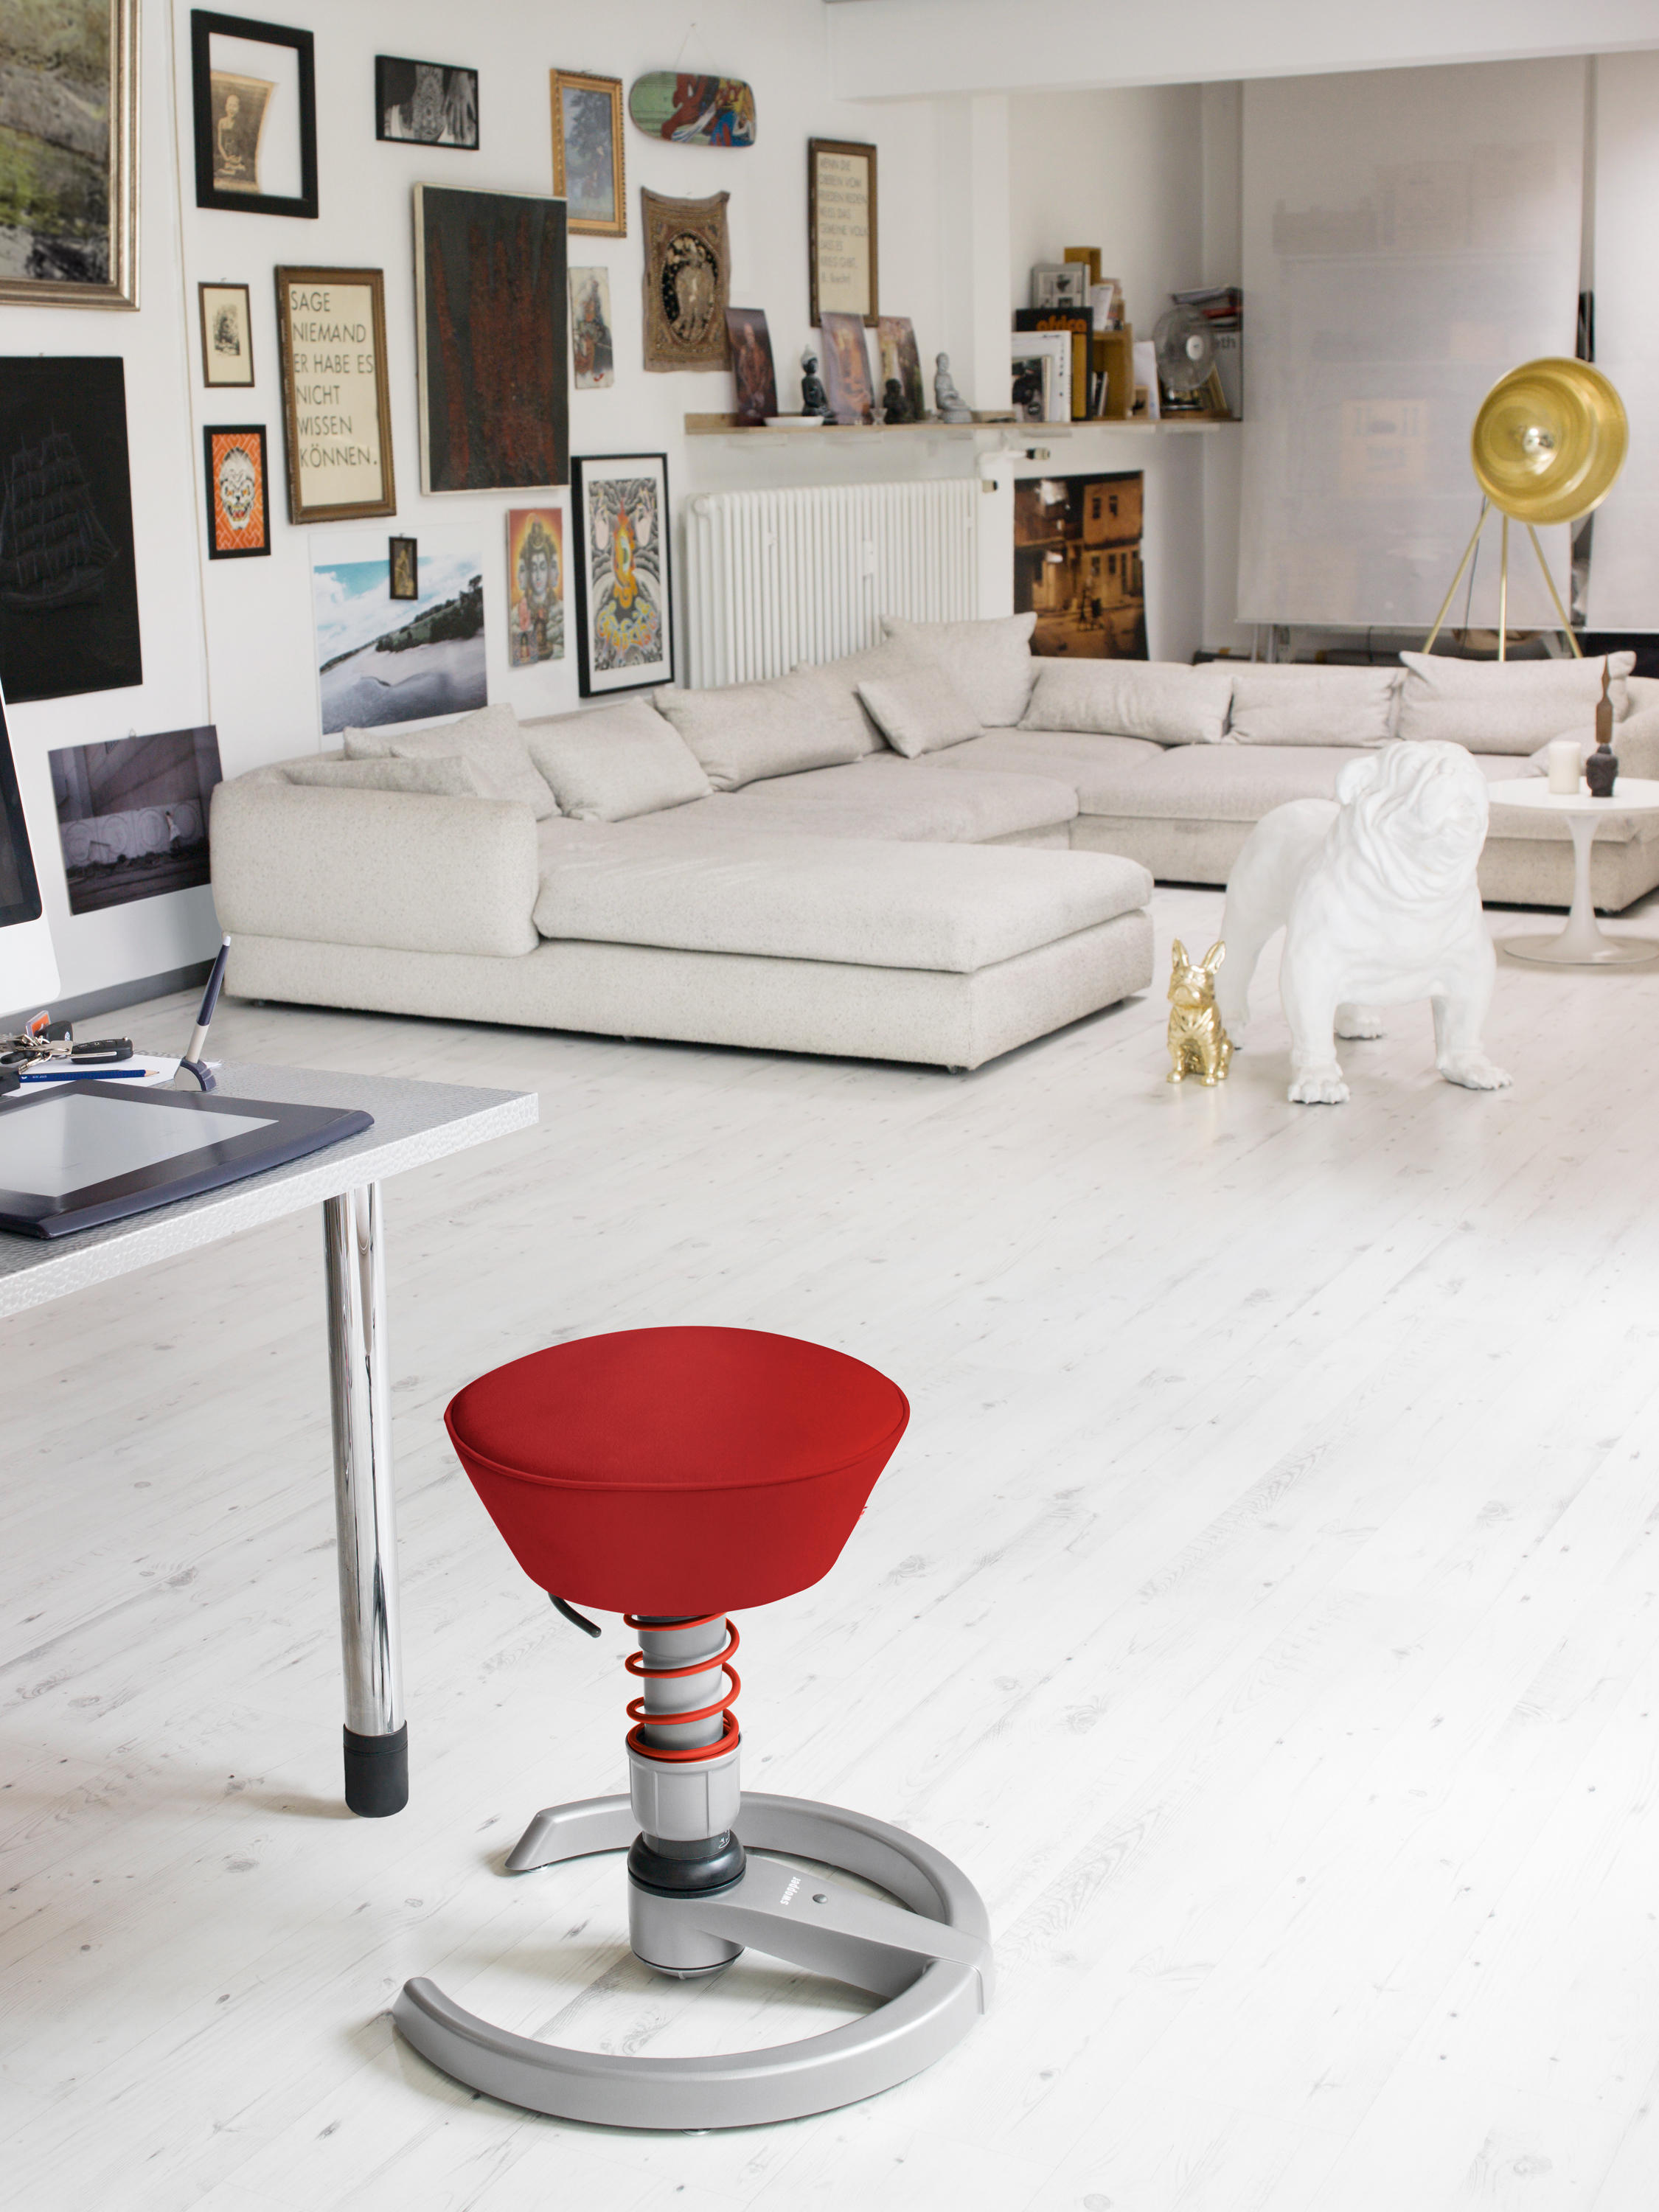 swopper classic swivel stools from aeris architonic. Black Bedroom Furniture Sets. Home Design Ideas